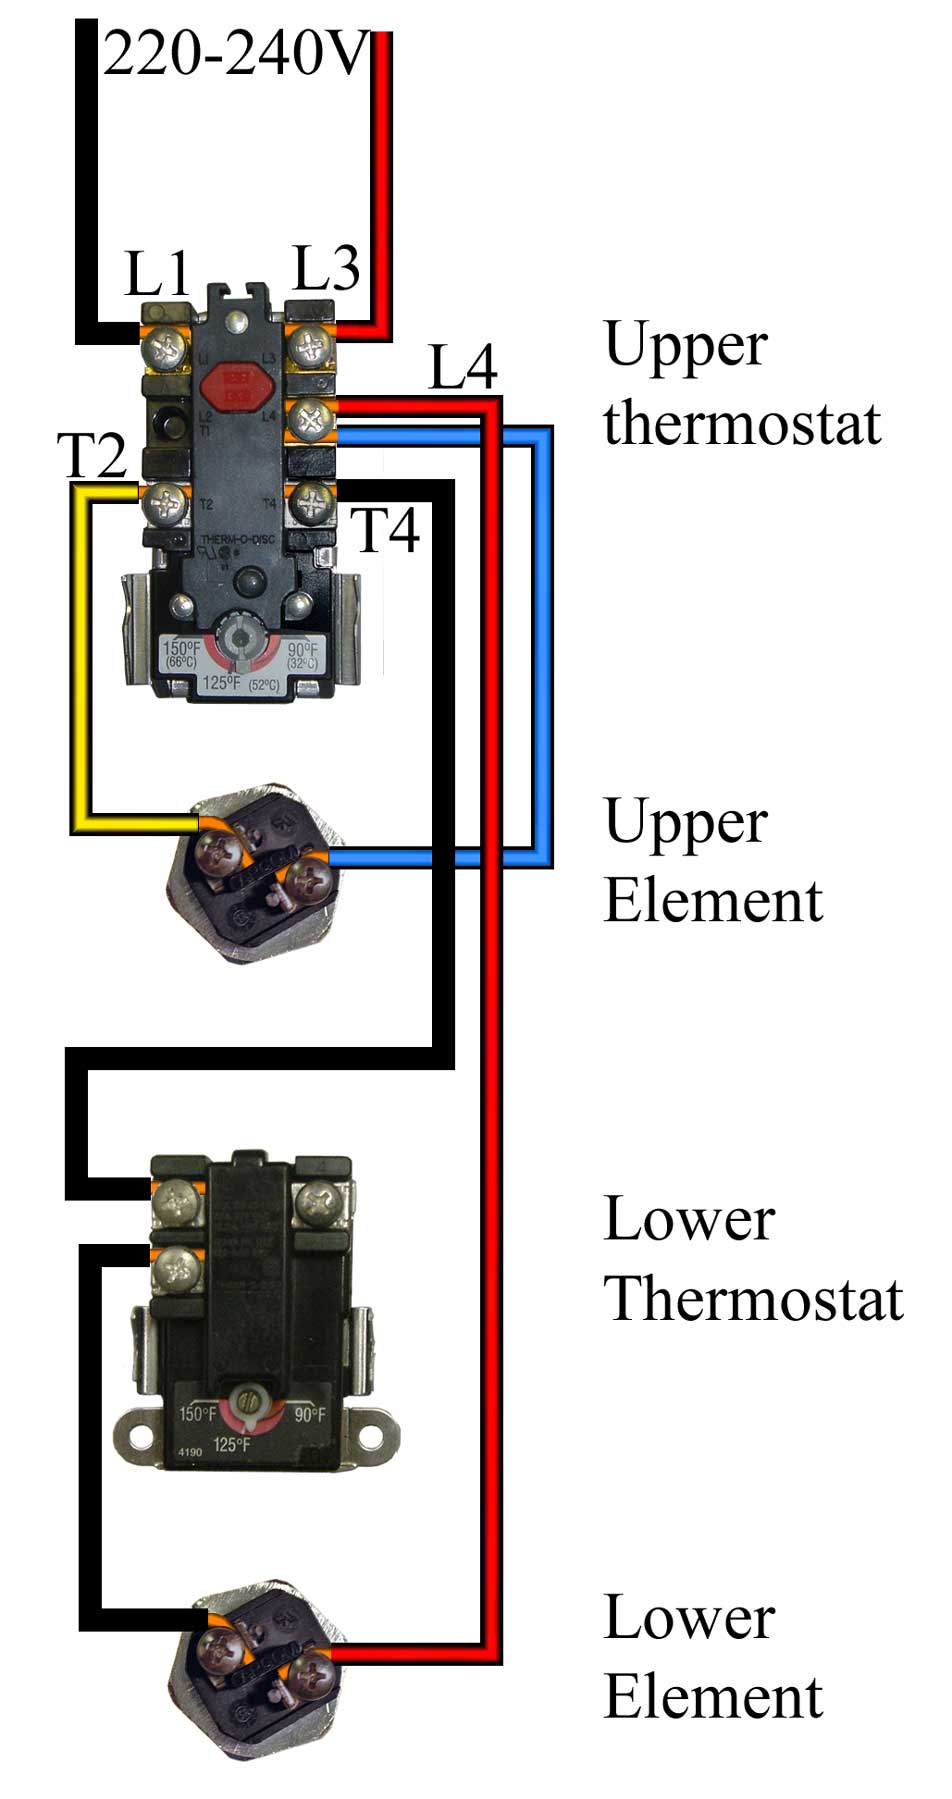 Water heater wiring w num10 how to wire water heater thermostat wiring diagram for water heater at panicattacktreatment.co